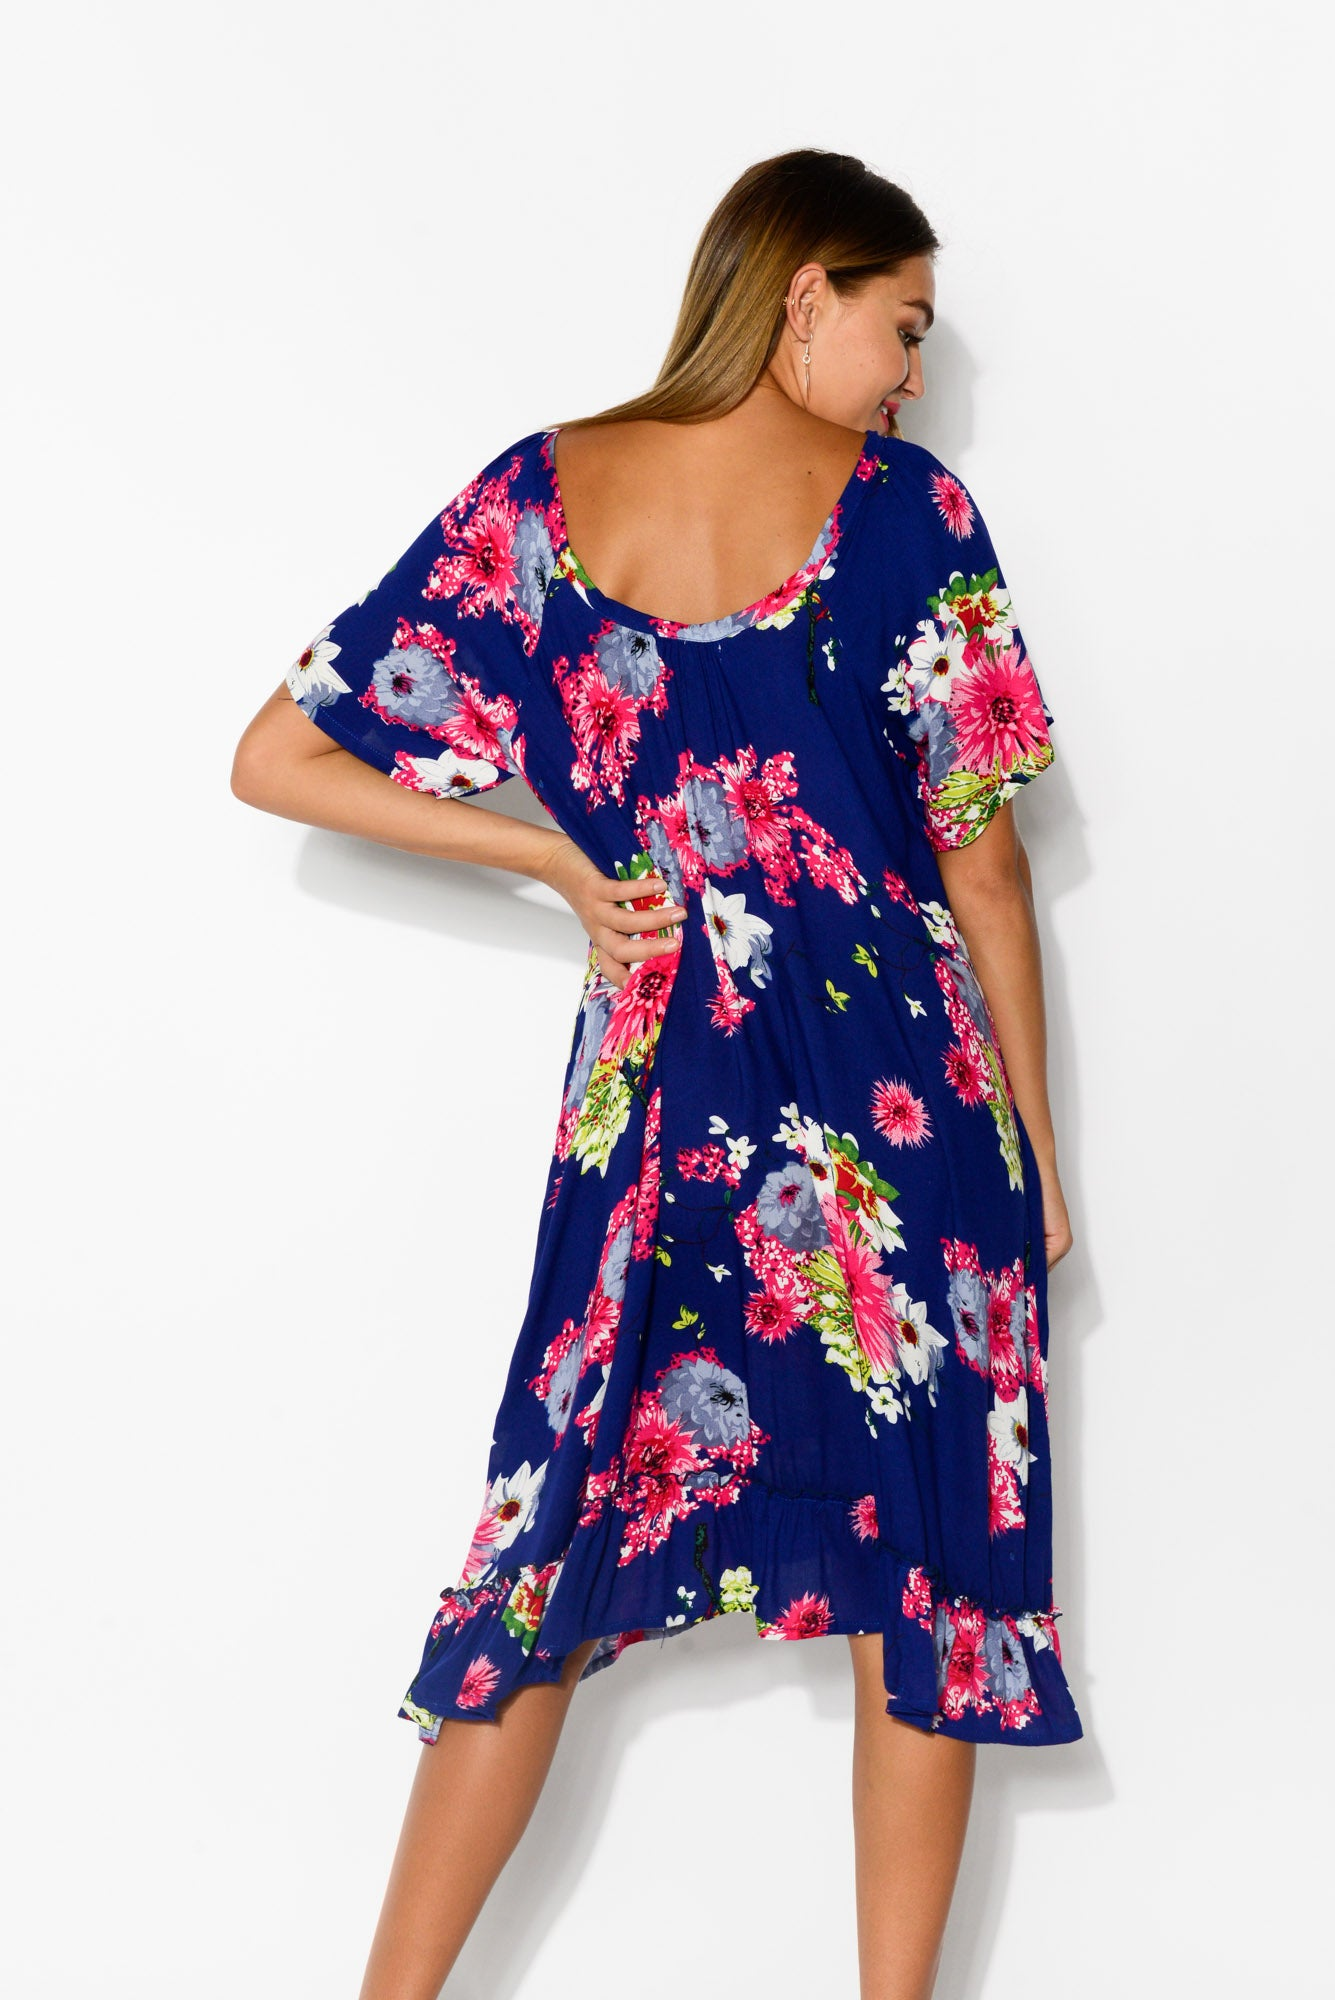 Elka Navy Sakura Swing Dress - Blue Bungalow